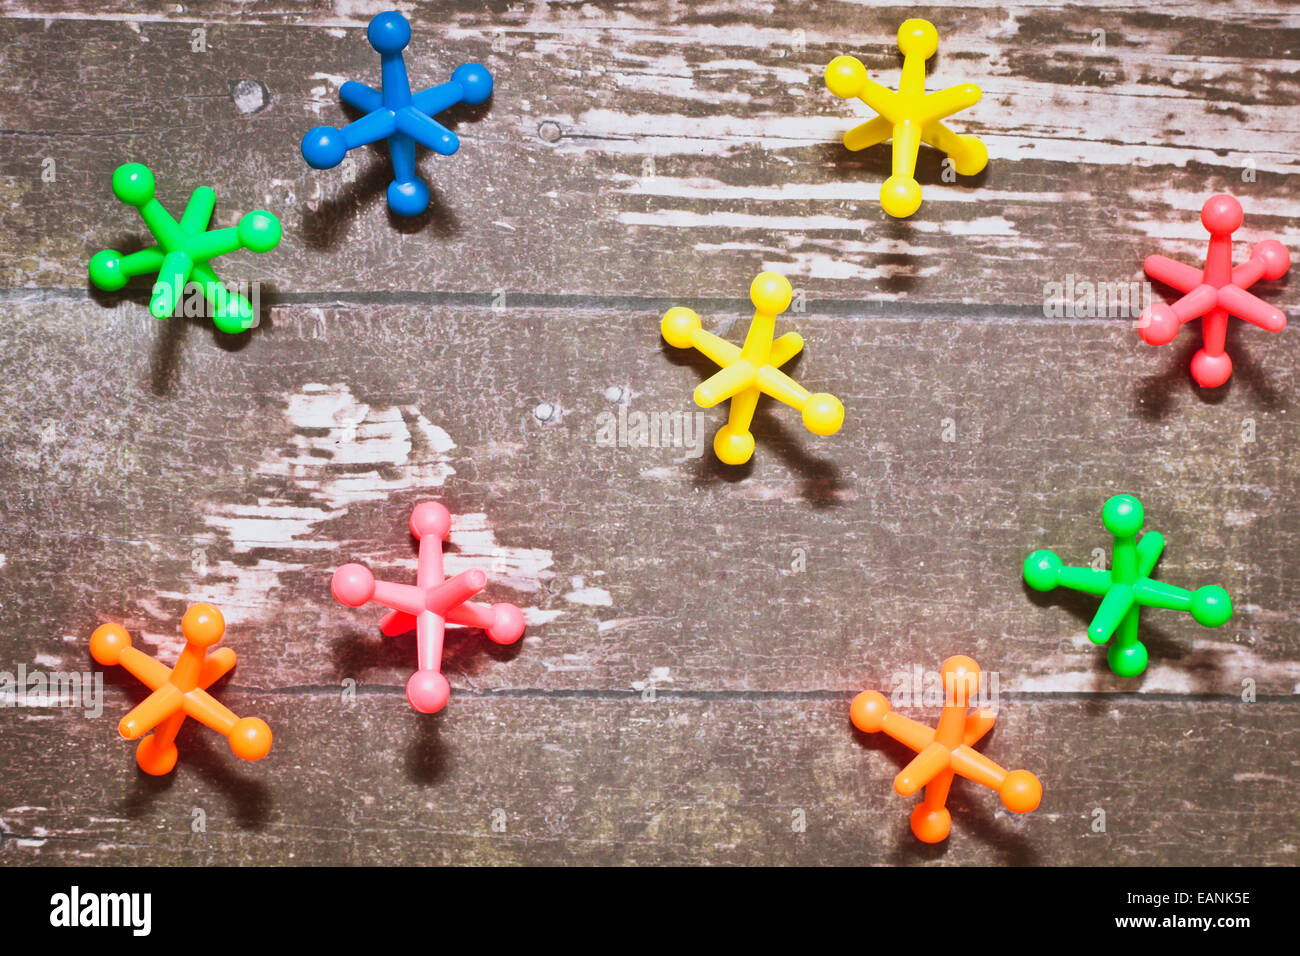 Colorful plastic toys on a wooden surface - Stock Image